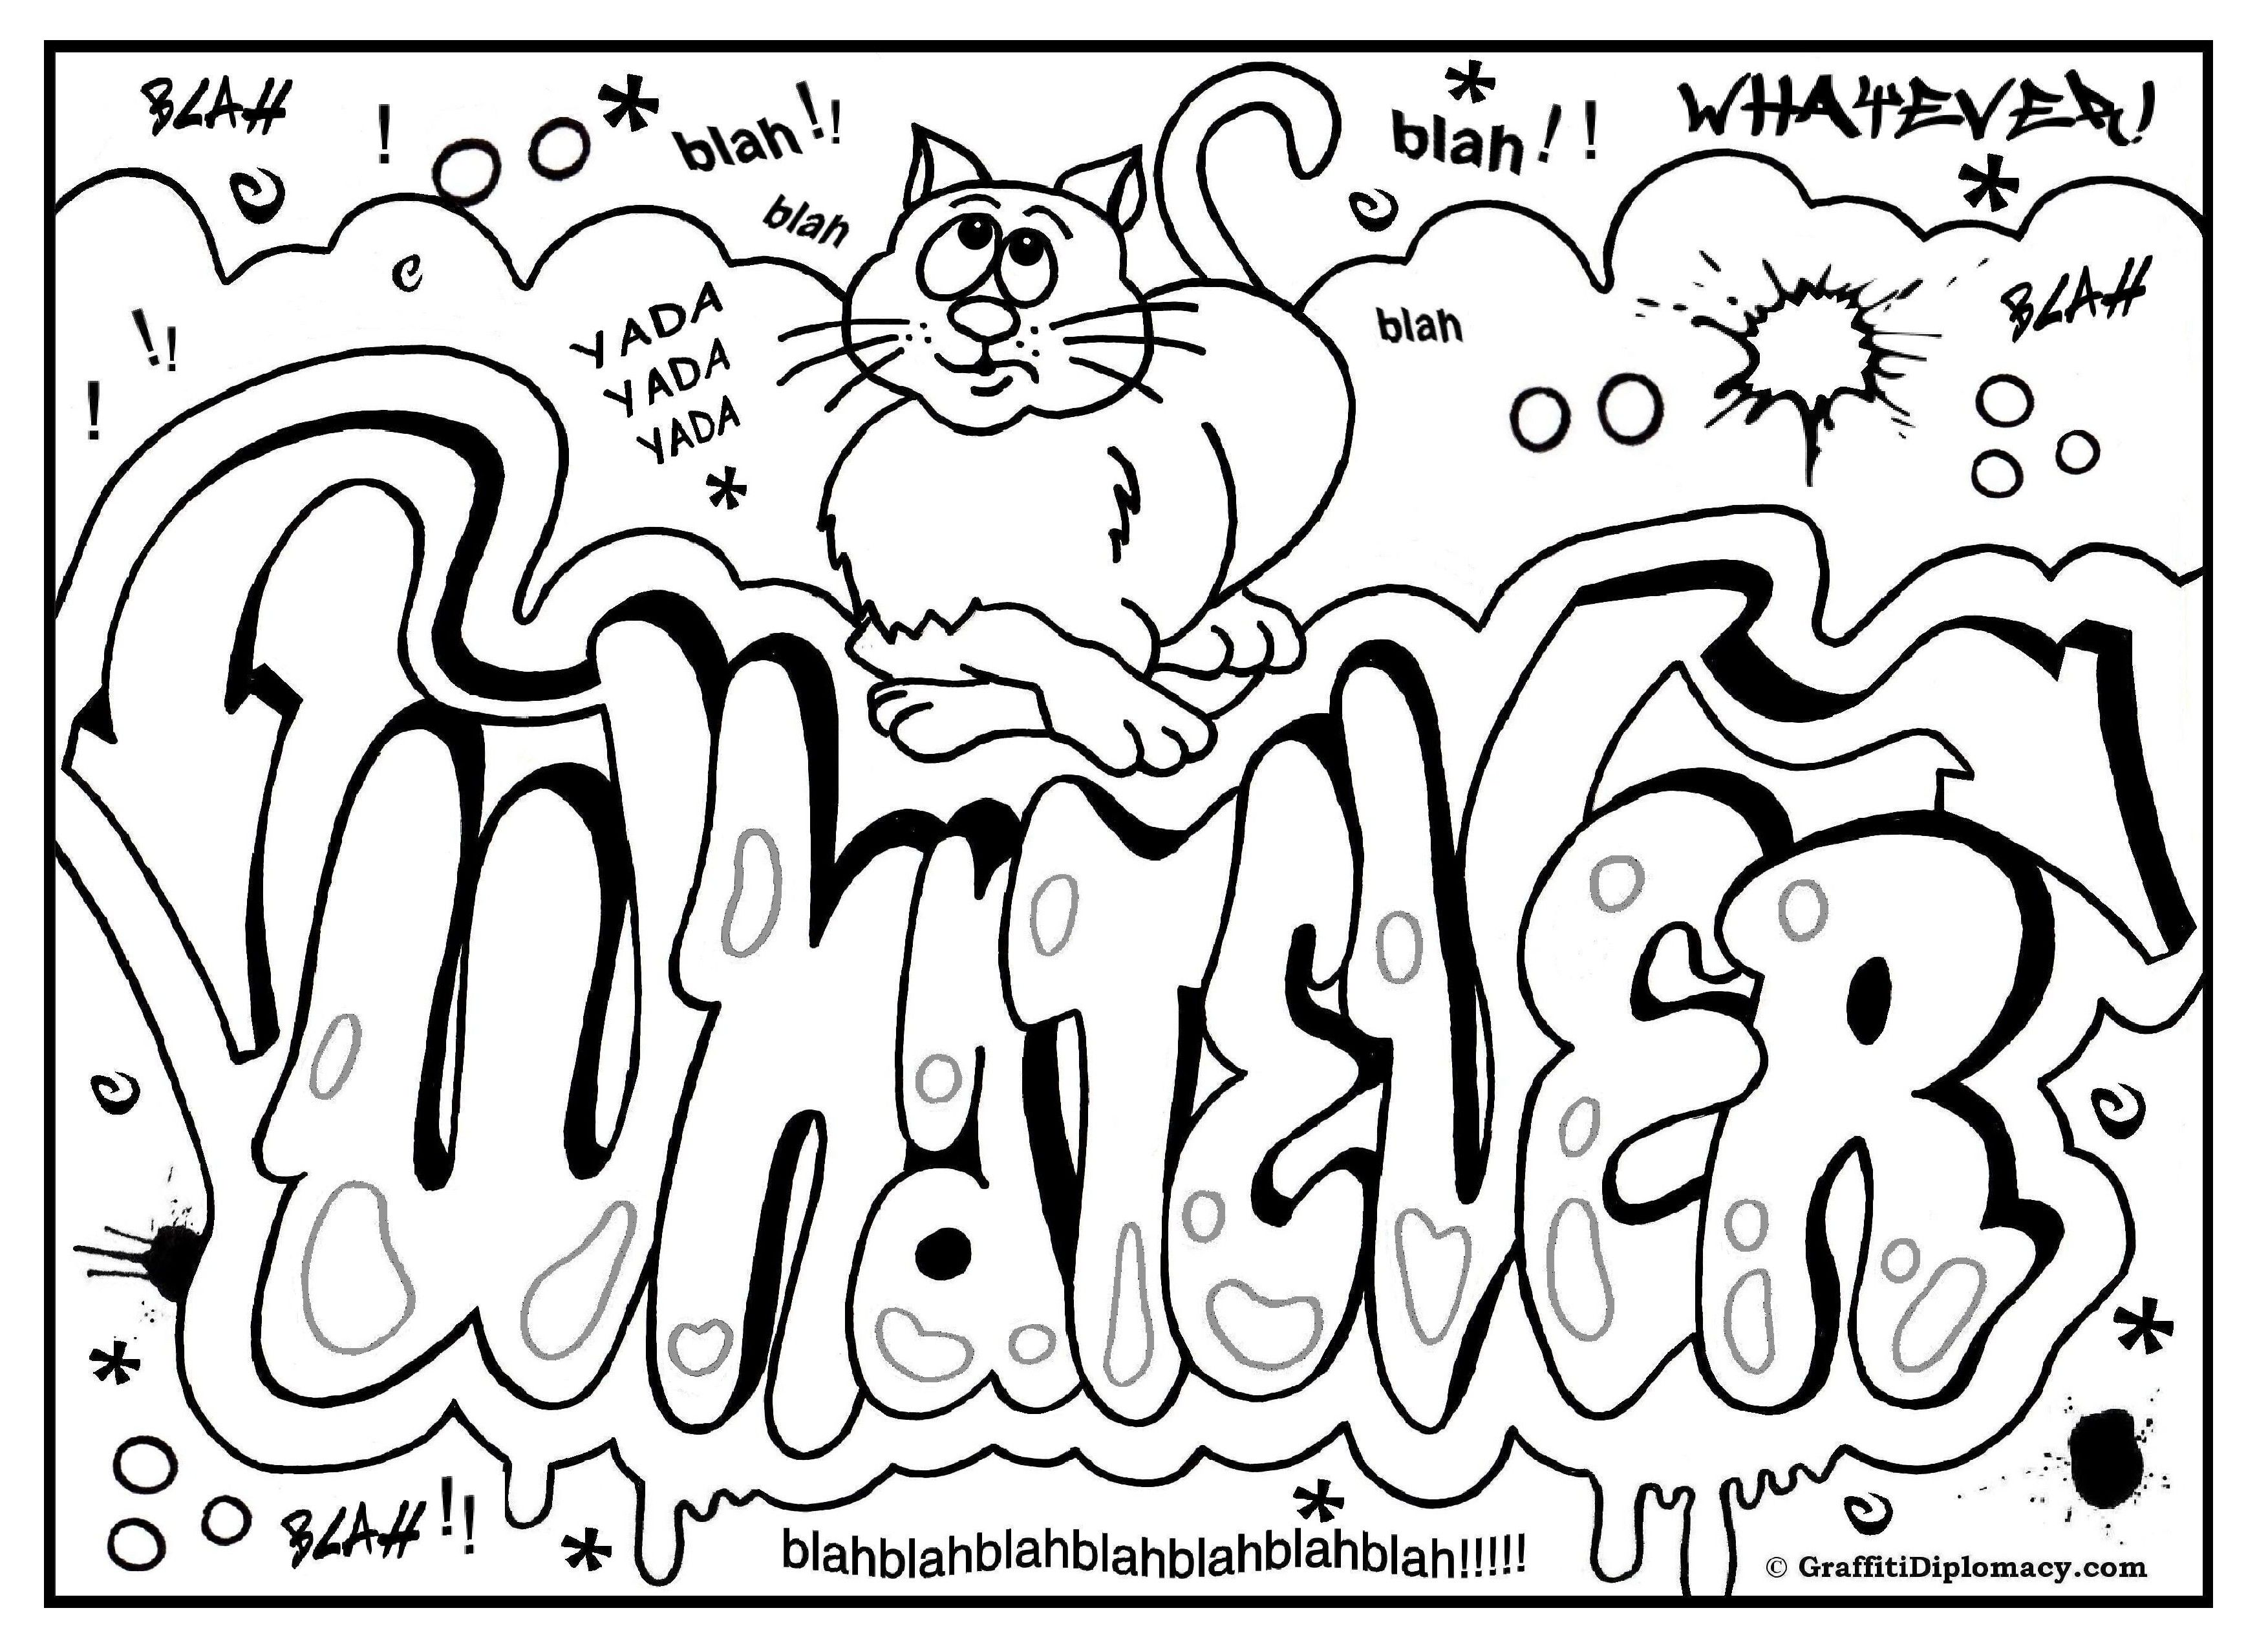 OMG! Another Graffiti Coloring Book of Room Signs - Learn to draw